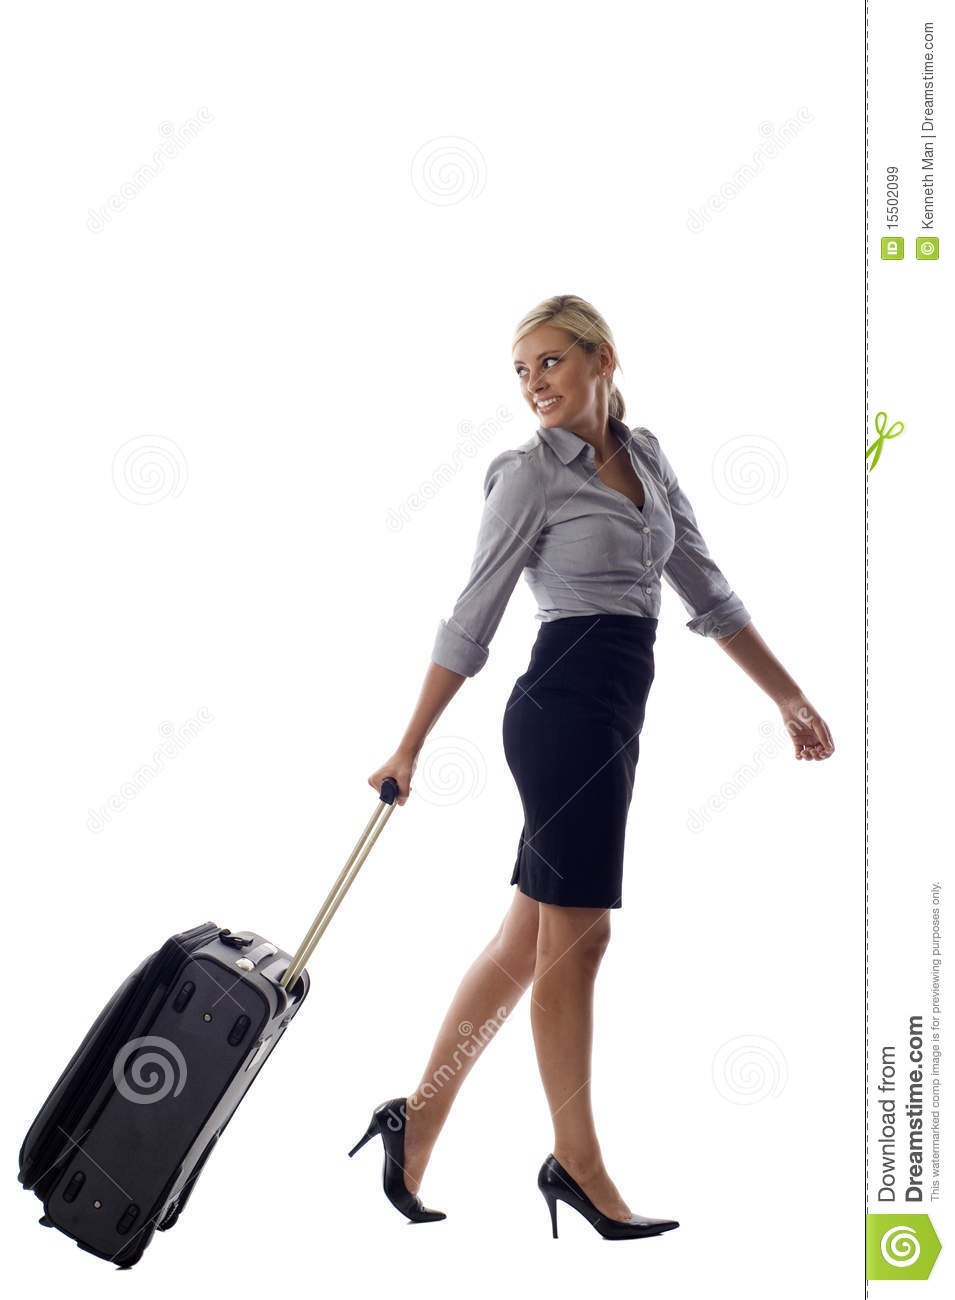 Woman With Luggage Royalty Free Stock Images - Image: 15502099